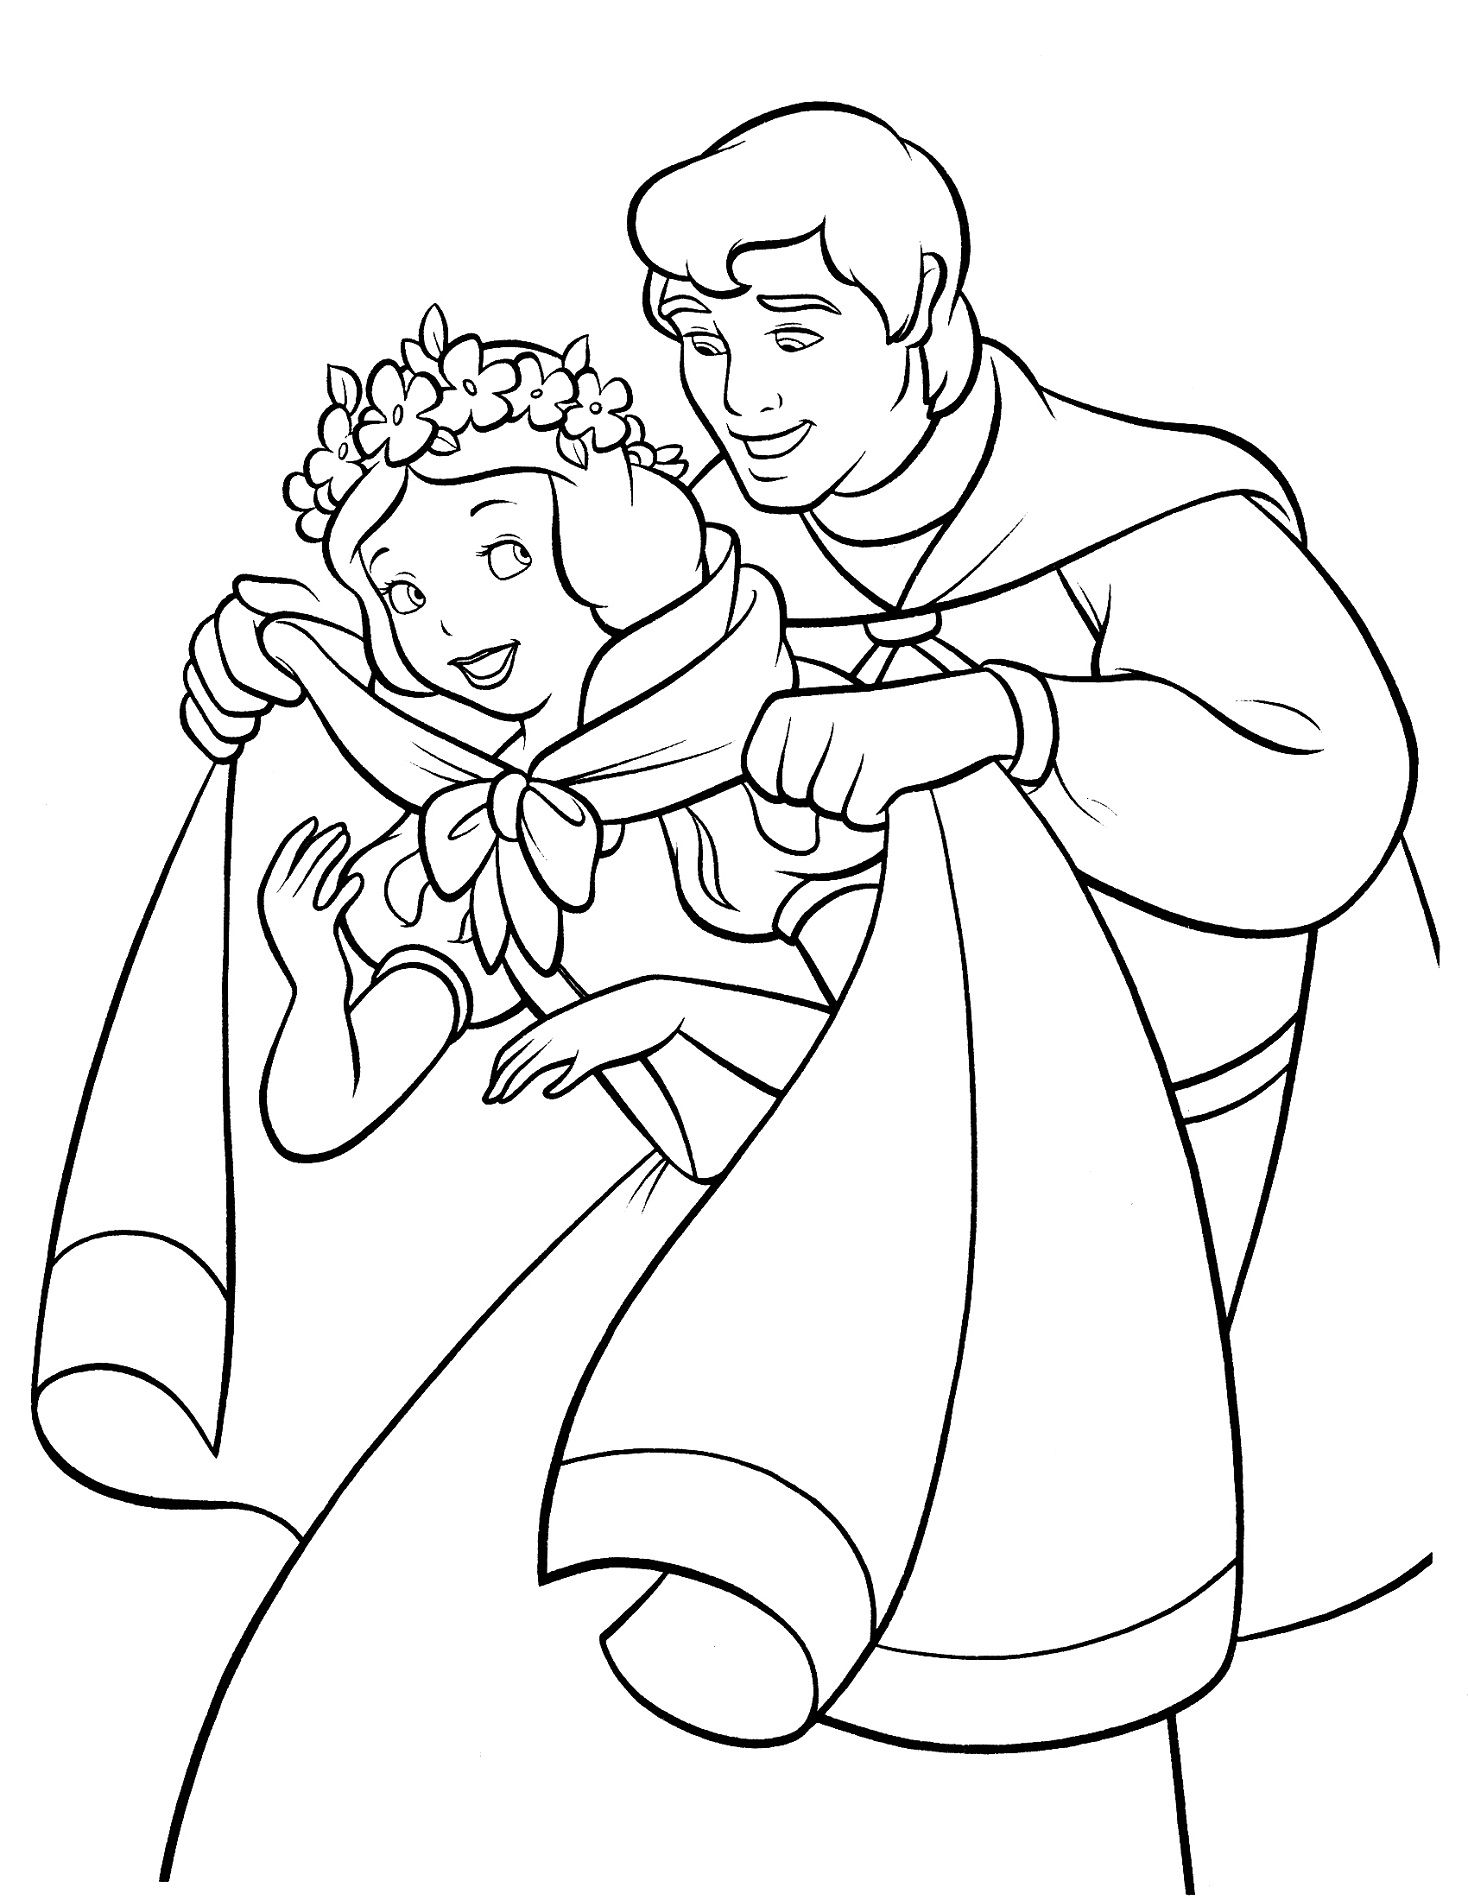 Snow White Color Pages to Print Snow white coloring